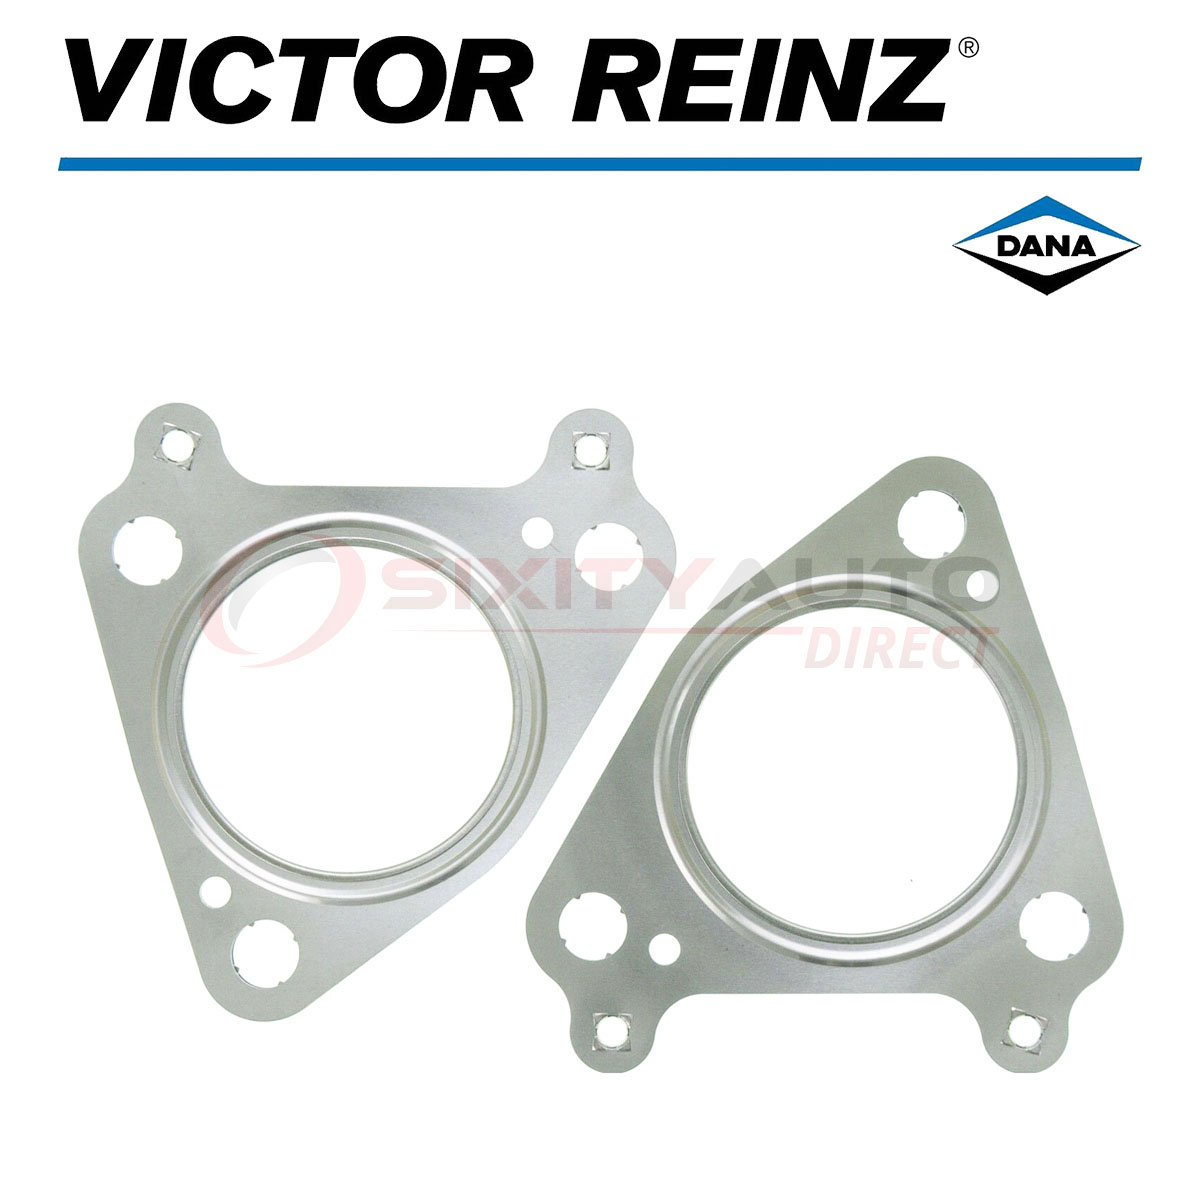 Victor Reinz Exhaust Pipe Flange Gasket for 2012 Hyundai Tucson 2.4L L4 mm